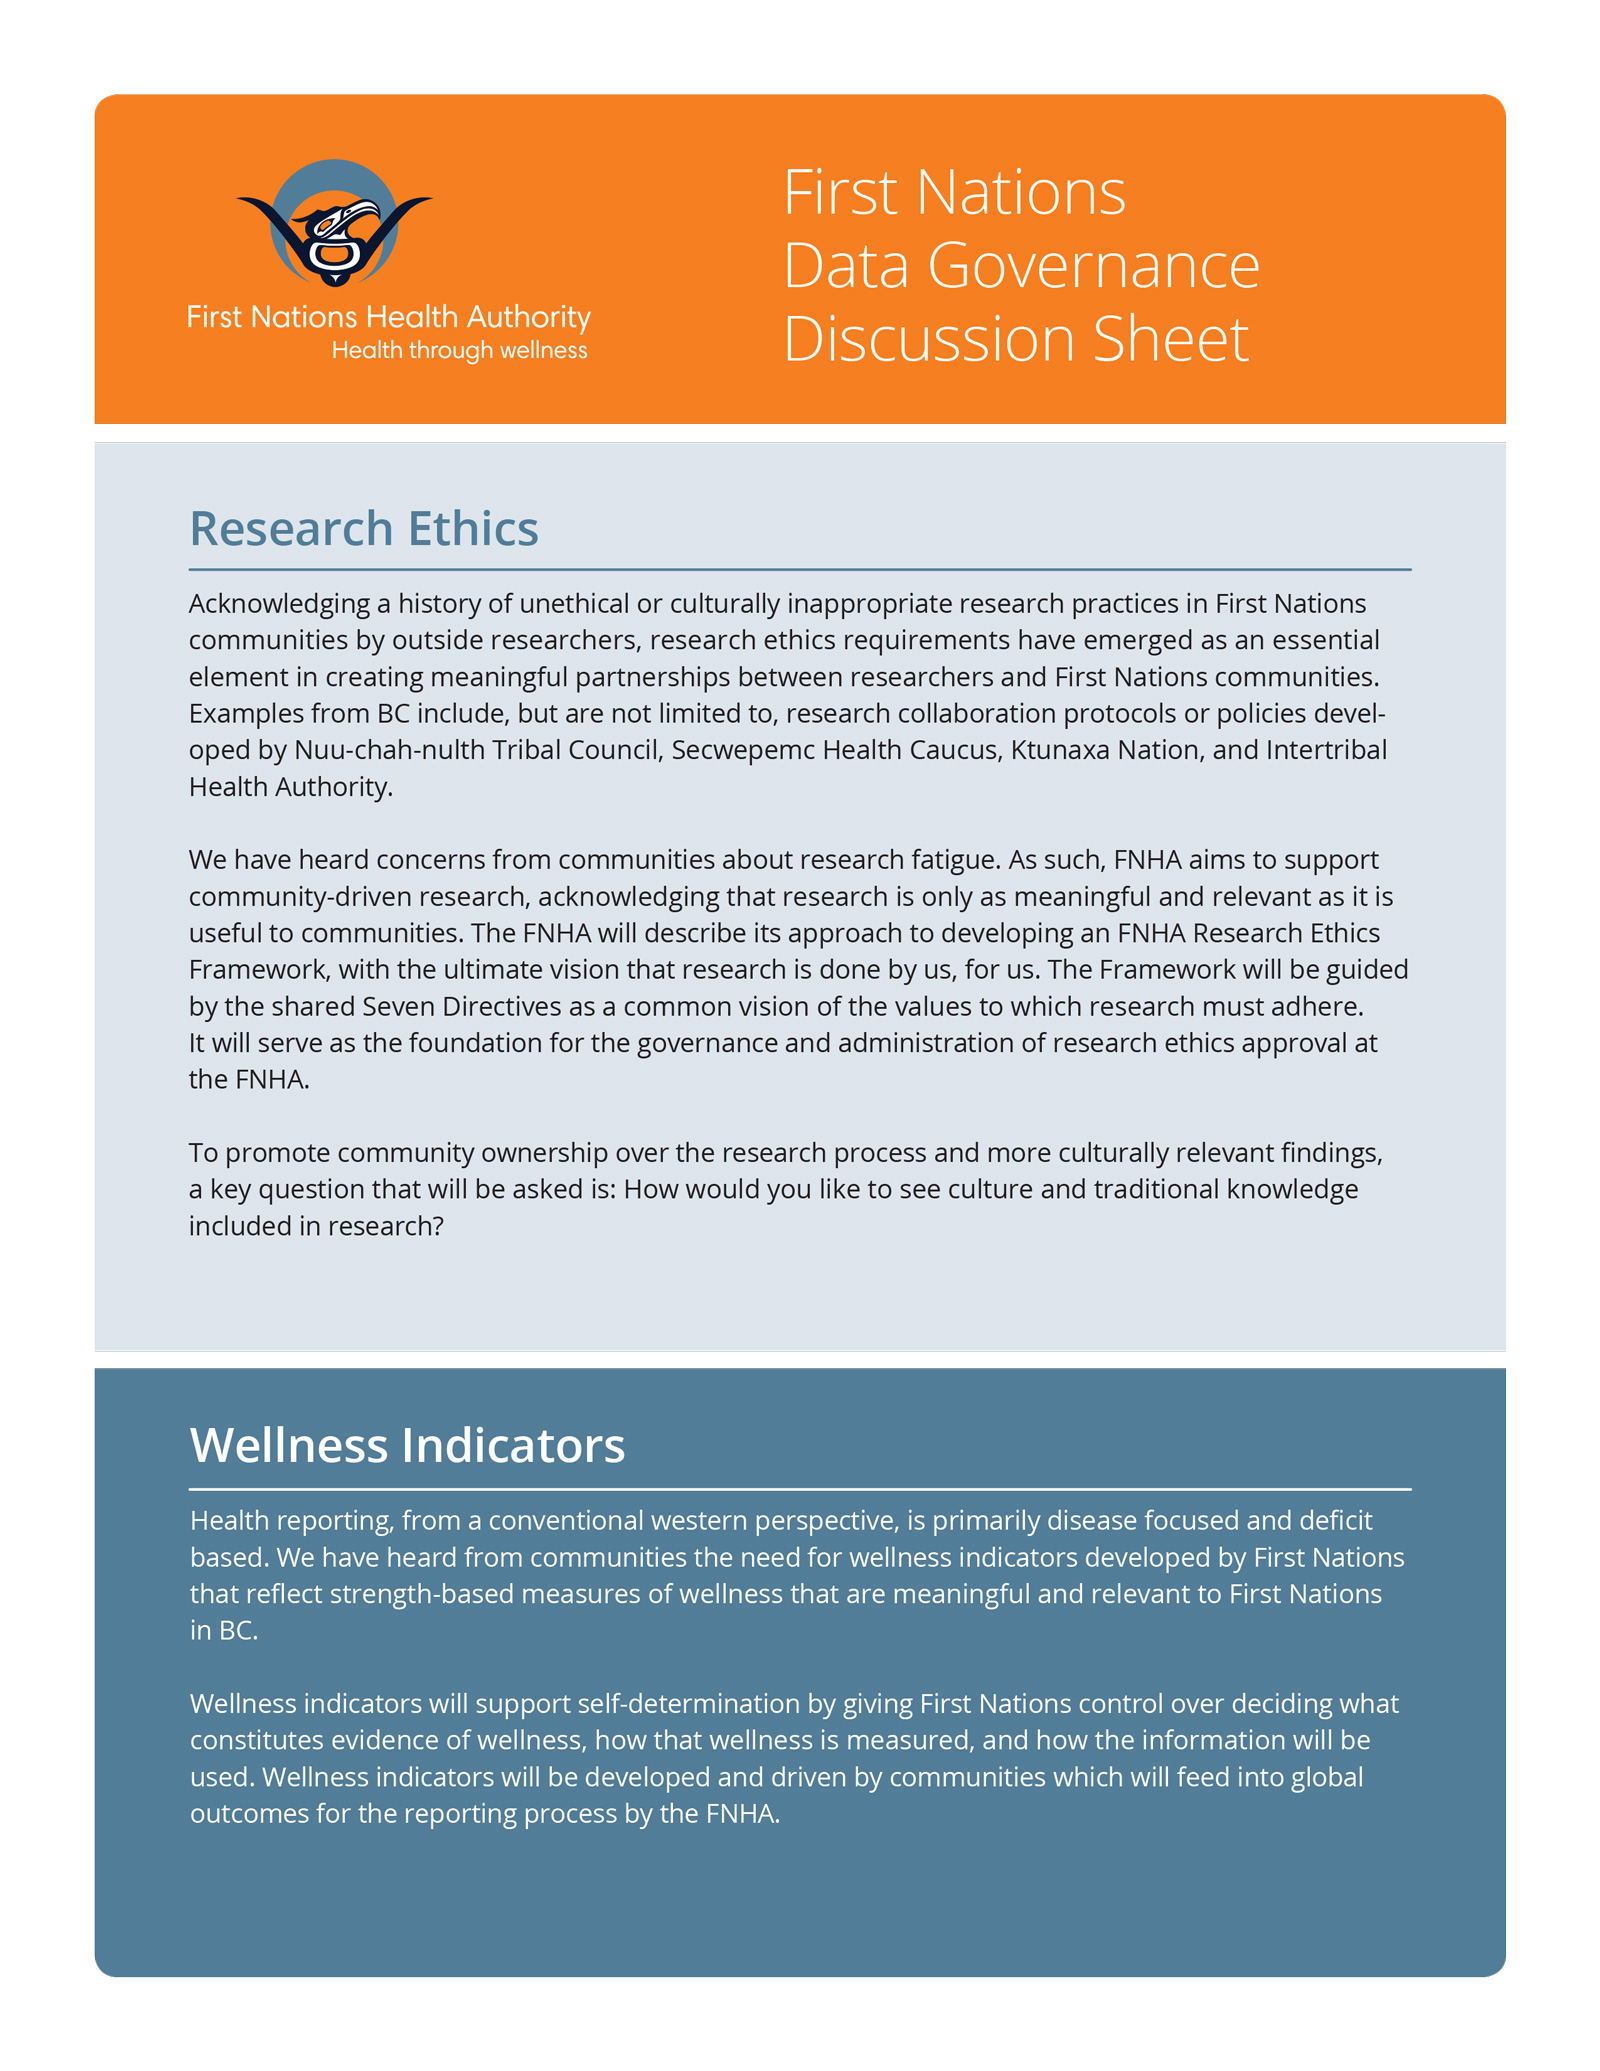 FNHA-First-Nations-Data-Governance-Discussion-Sheet-1.jpg